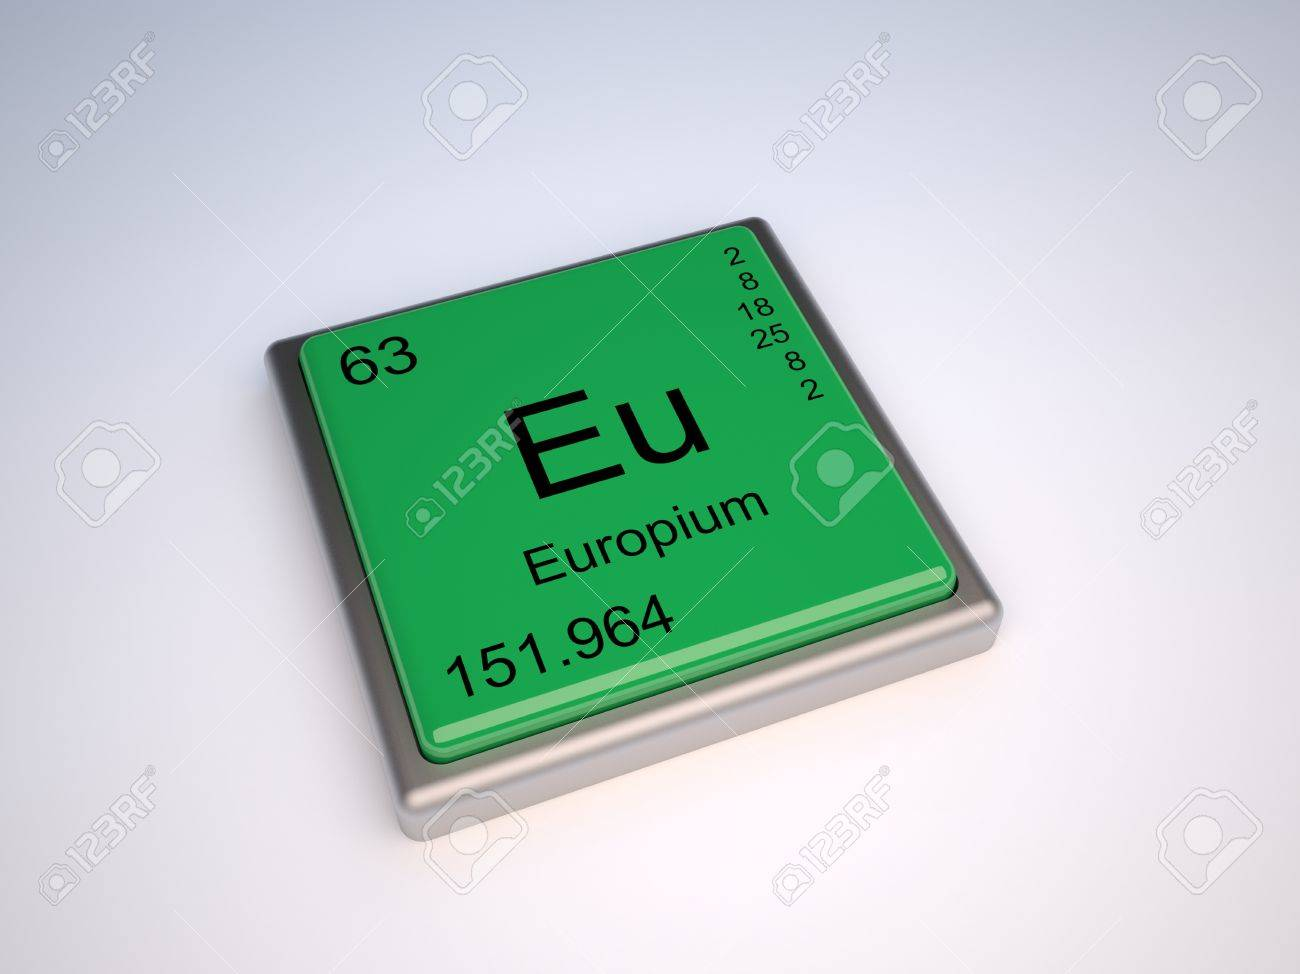 Europium chemical element of the periodic table with symbol Eu Stock Photo - 9257111